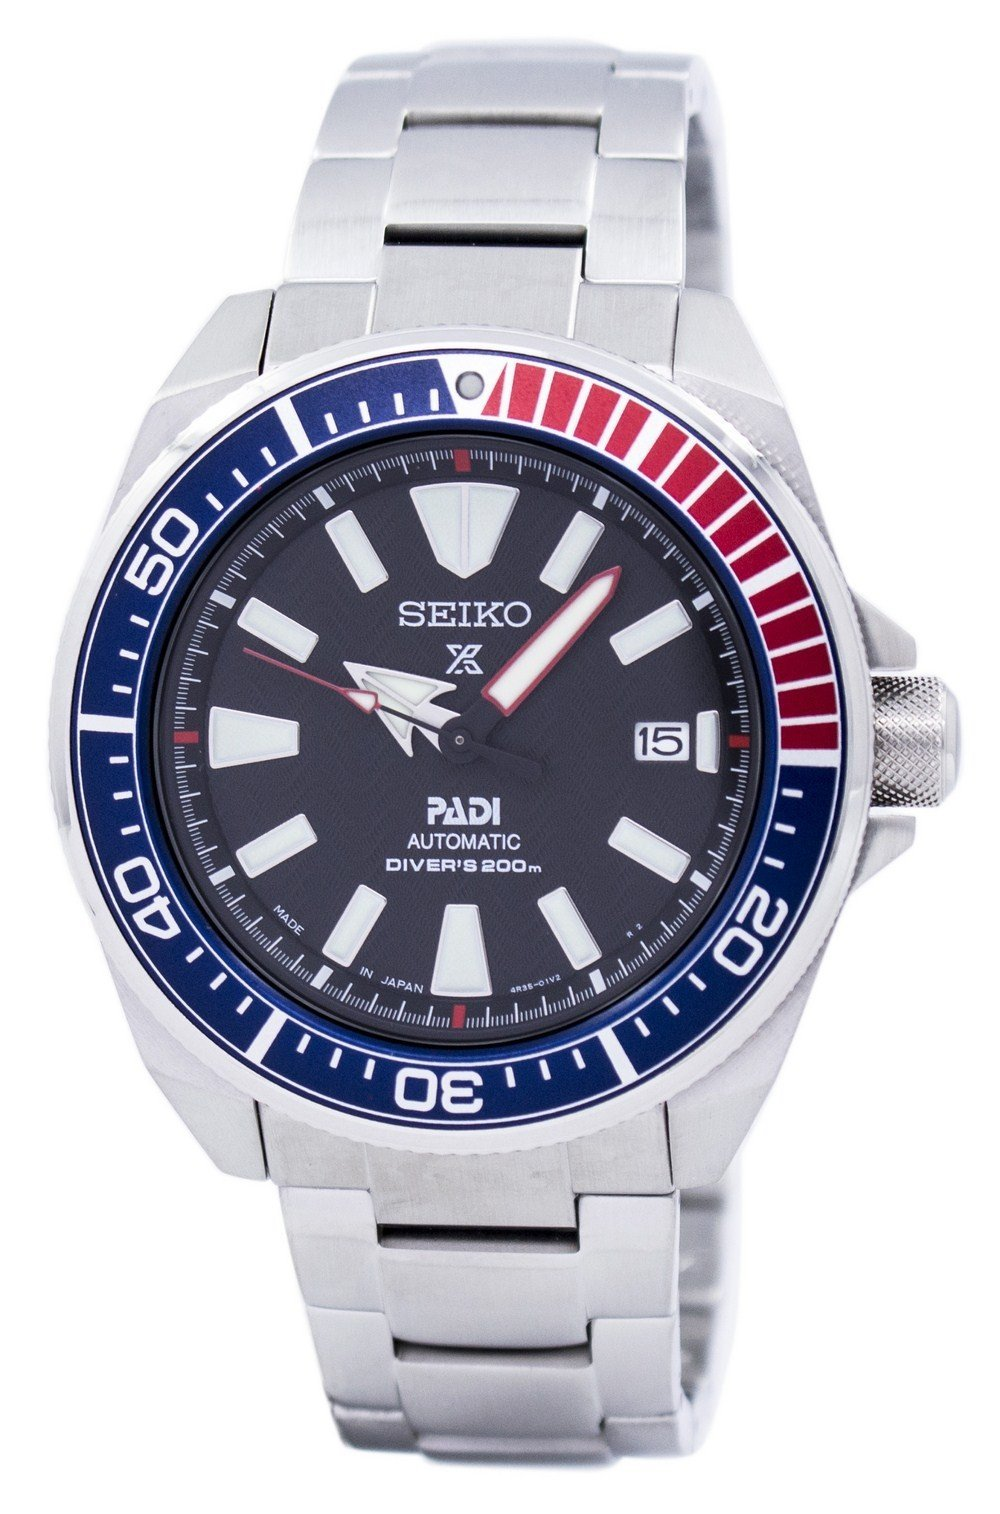 Seiko Prospex Padi Automatic Diver's Japan Made SRPB99 SRPB99J1 SRPB99J Men's Watch